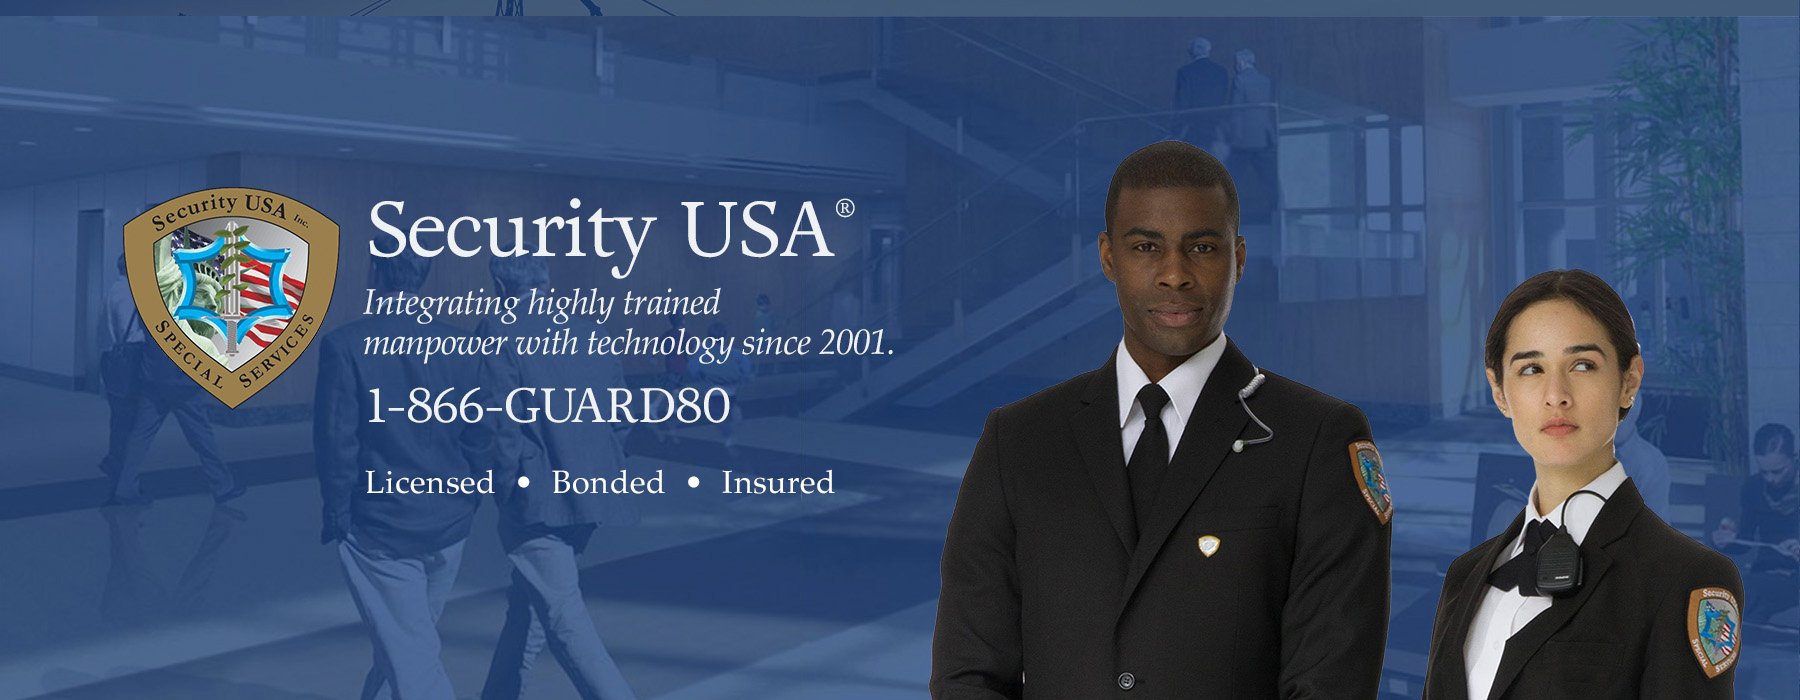 Security USA, Inc